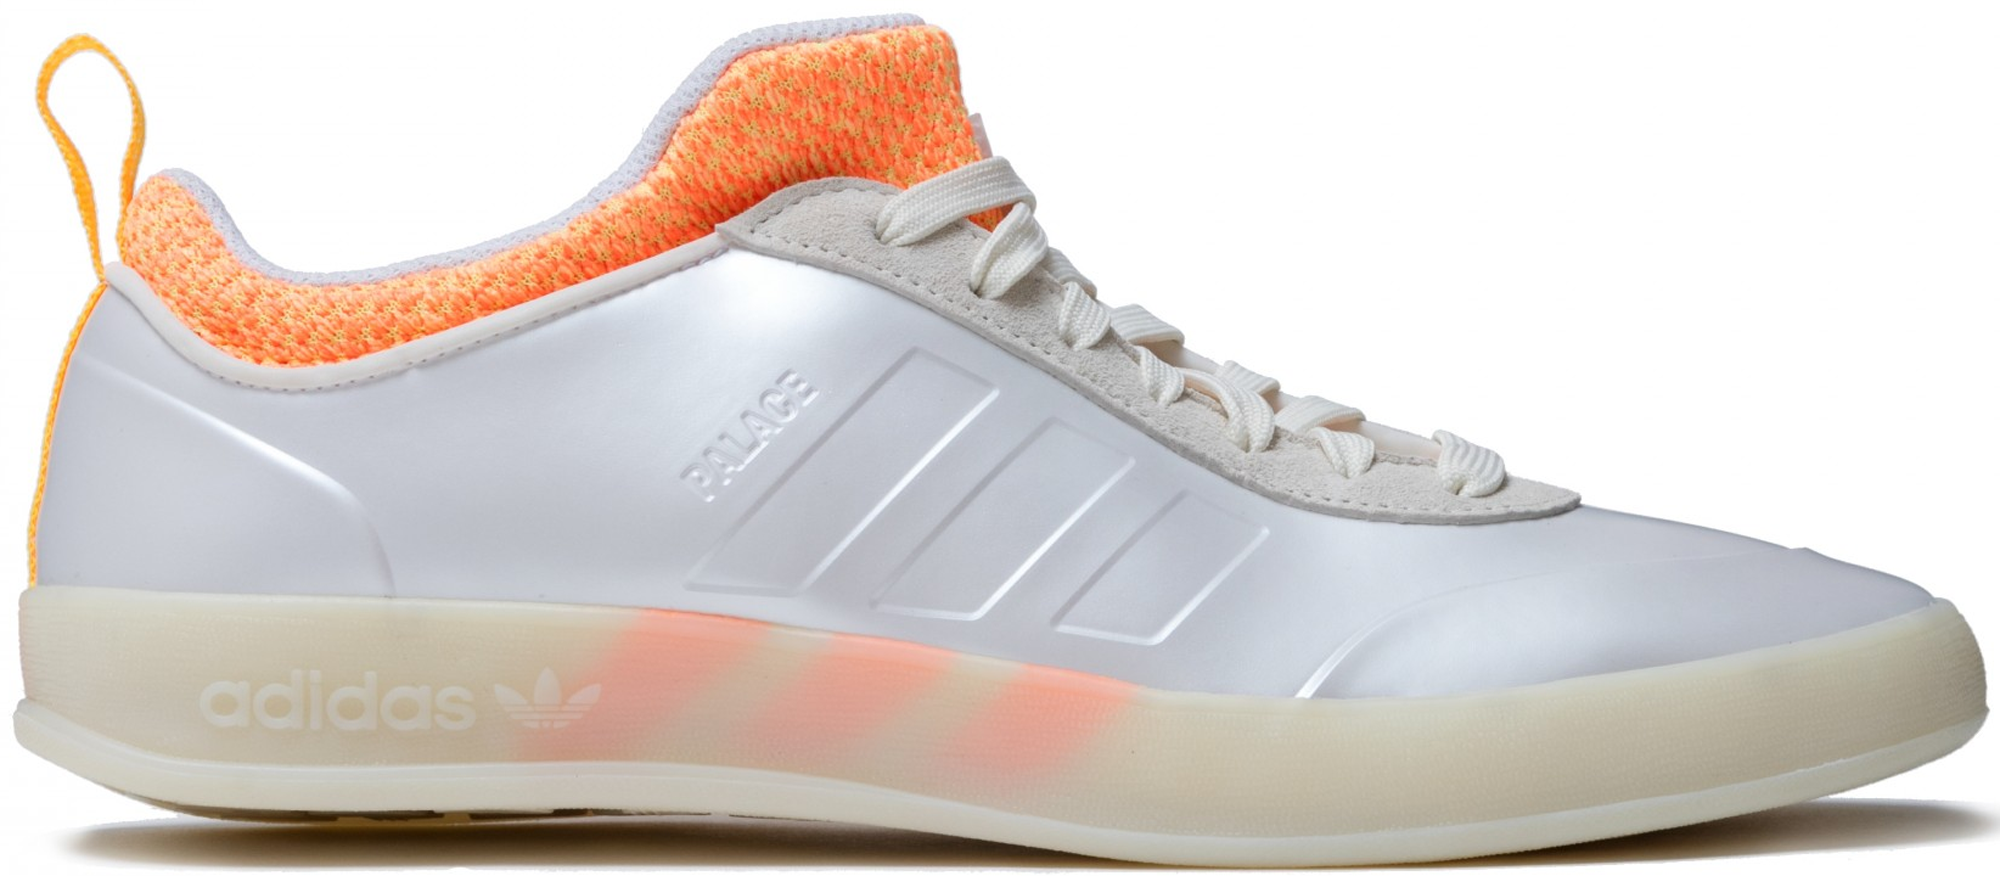 adidas Palace Pro 2 White Orange